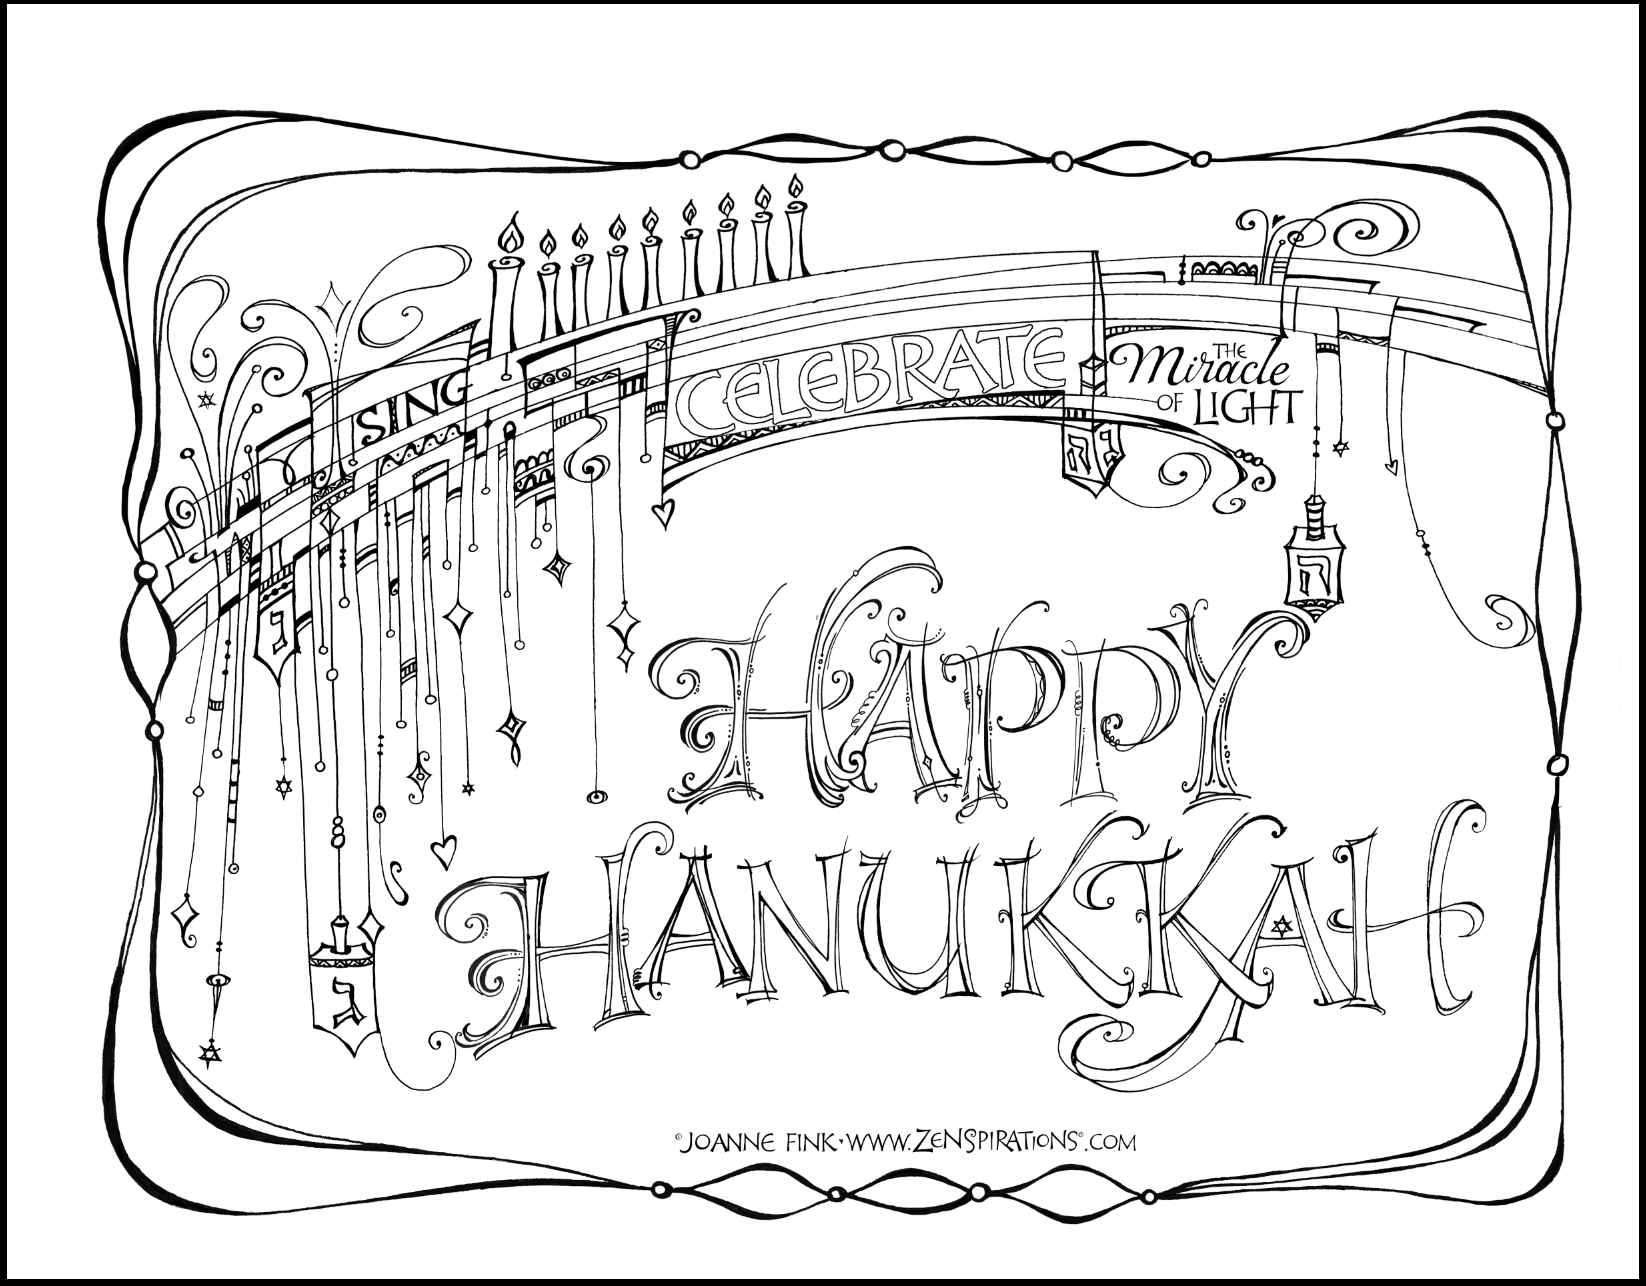 Zenspirations Blog Just Believe Free Coloring Pages Coloring Pages Hanukkah Cards [ 1286 x 1646 Pixel ]